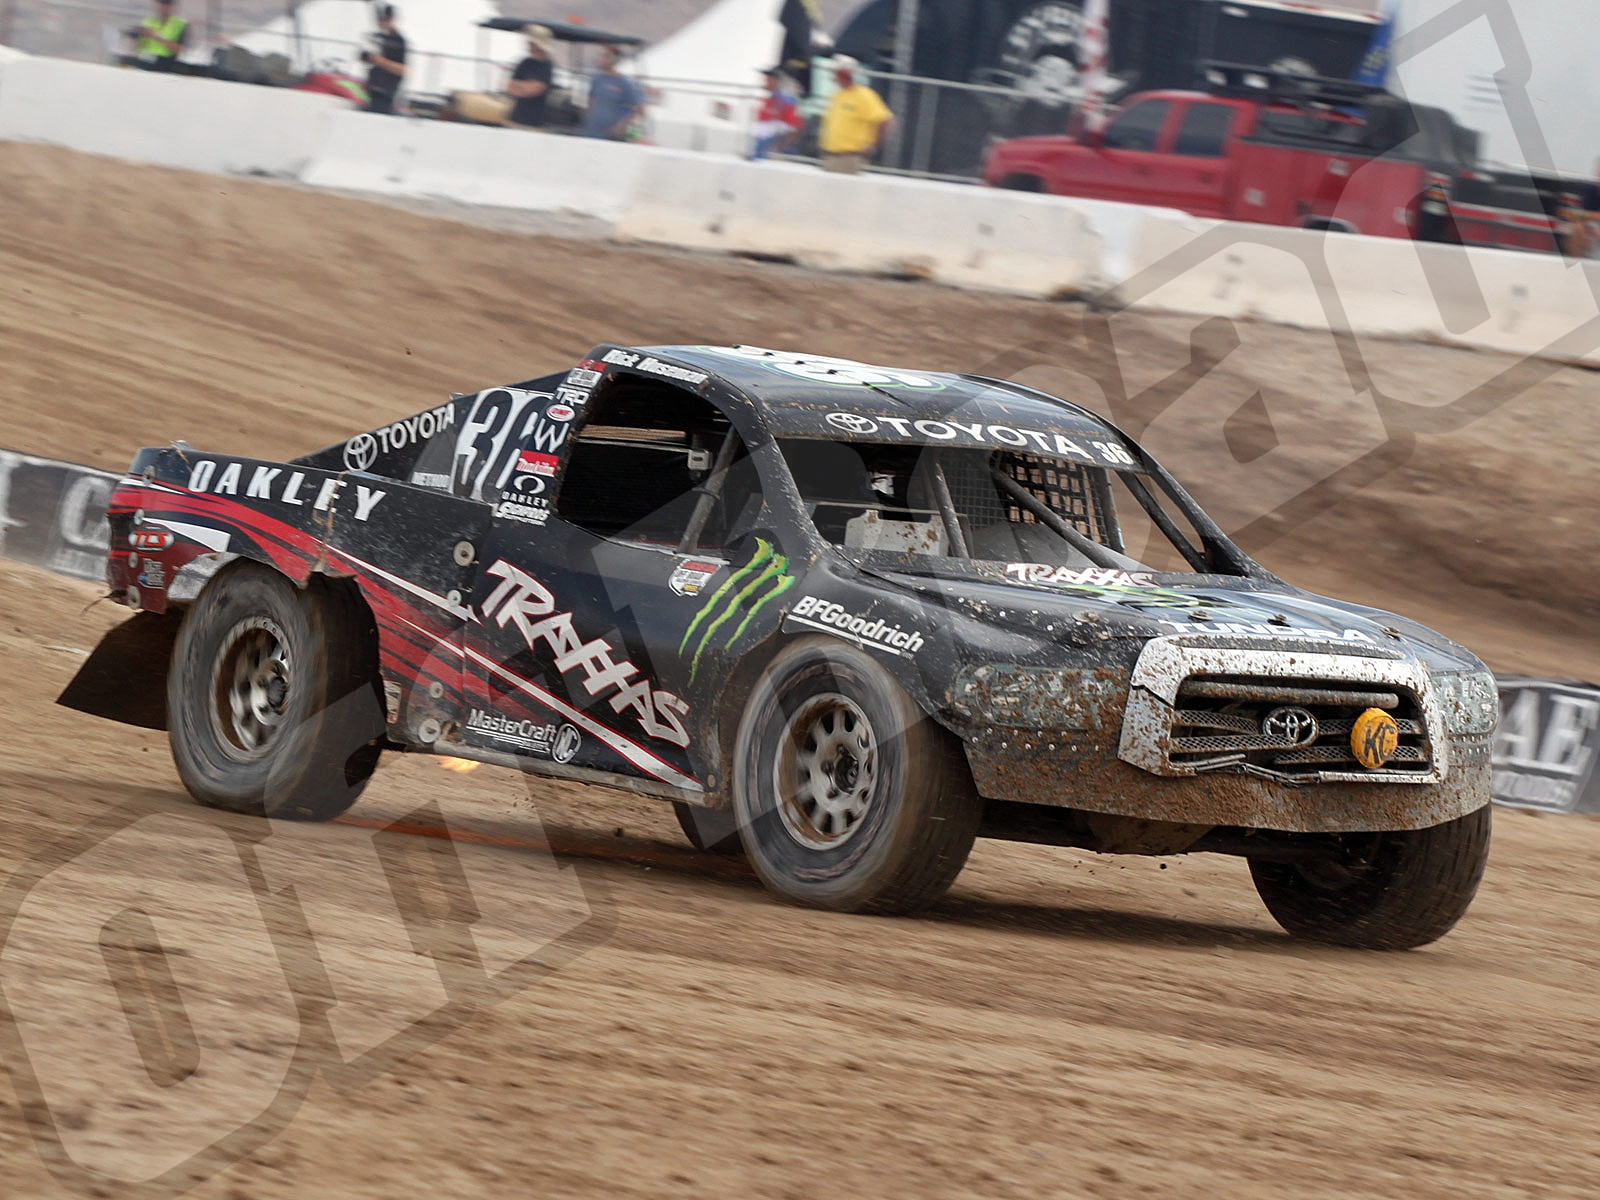 111010or 8664+lucas oil off road racing series+pro 4